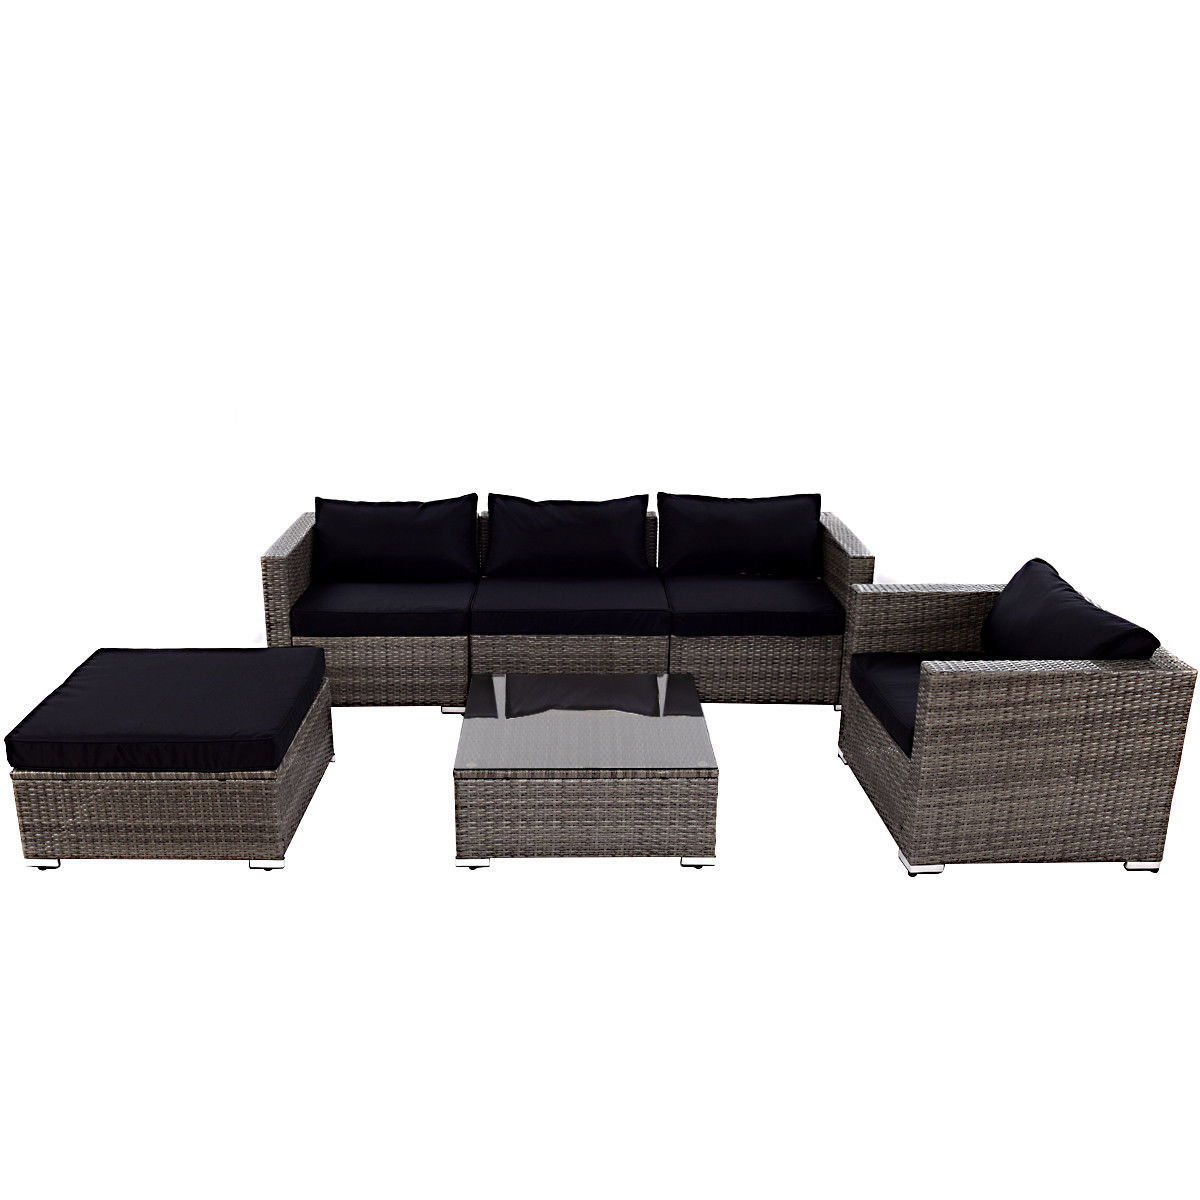 Fantastic Costway 6 Piece Rattan Wicker Patio Furniture Set Sectional Sofa Couch Yard W Black Cushion Home Interior And Landscaping Oversignezvosmurscom